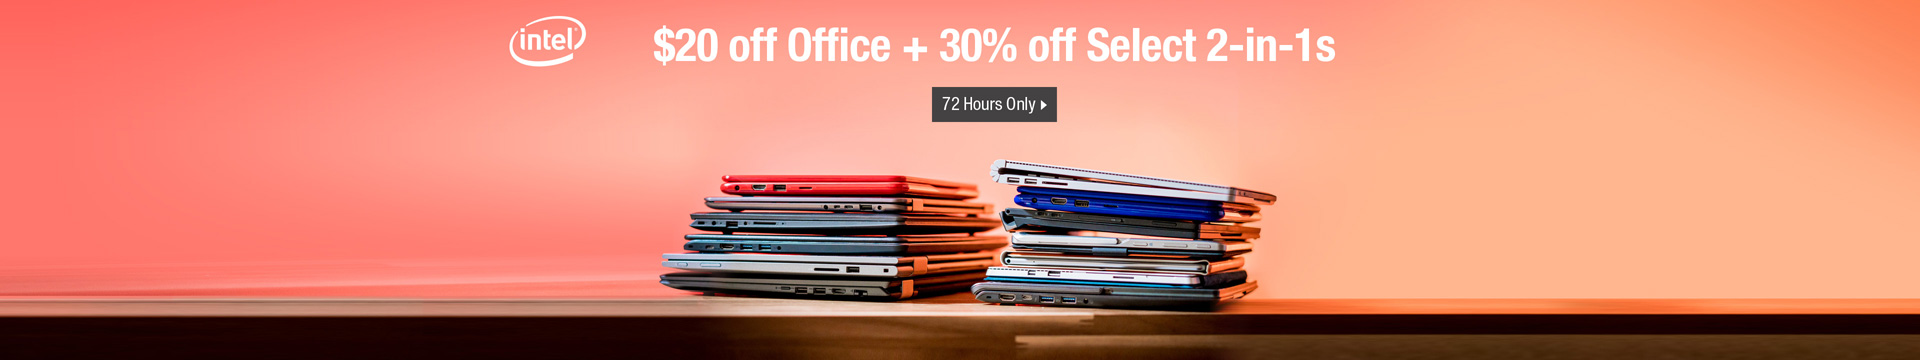 $20 off office + 30% off select 2-in-1s